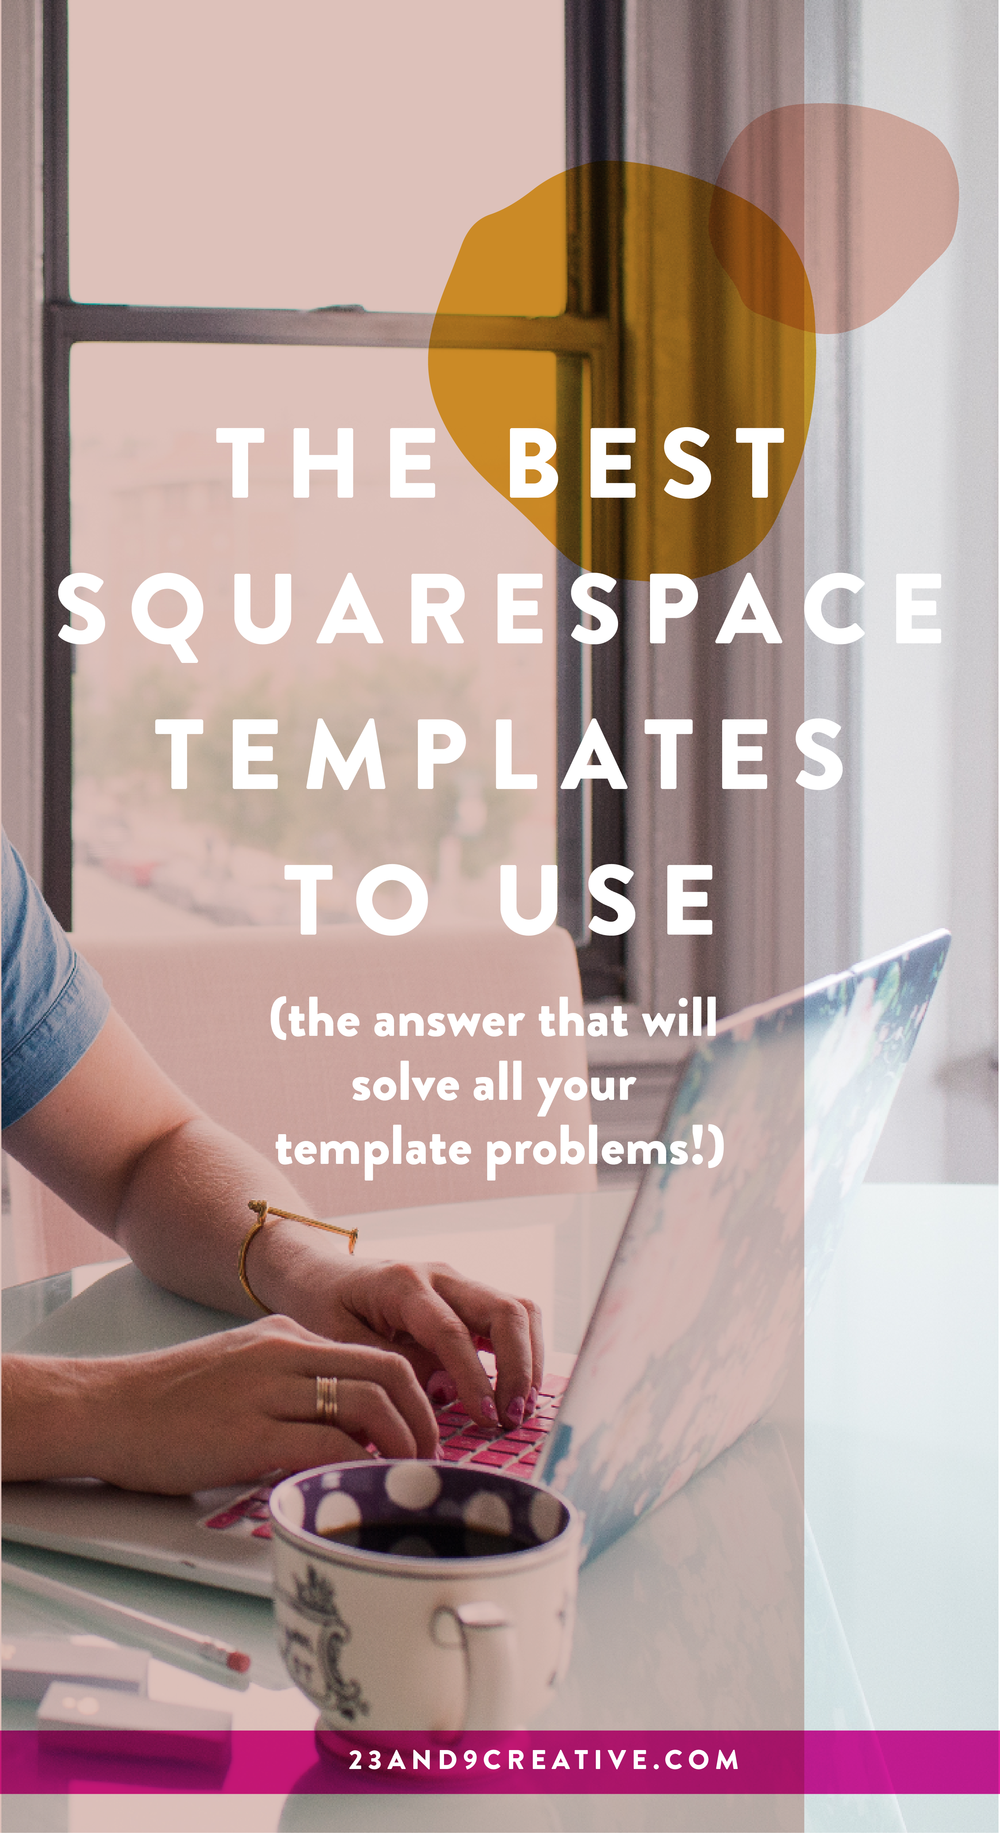 The Best Squarespace Templates to Use